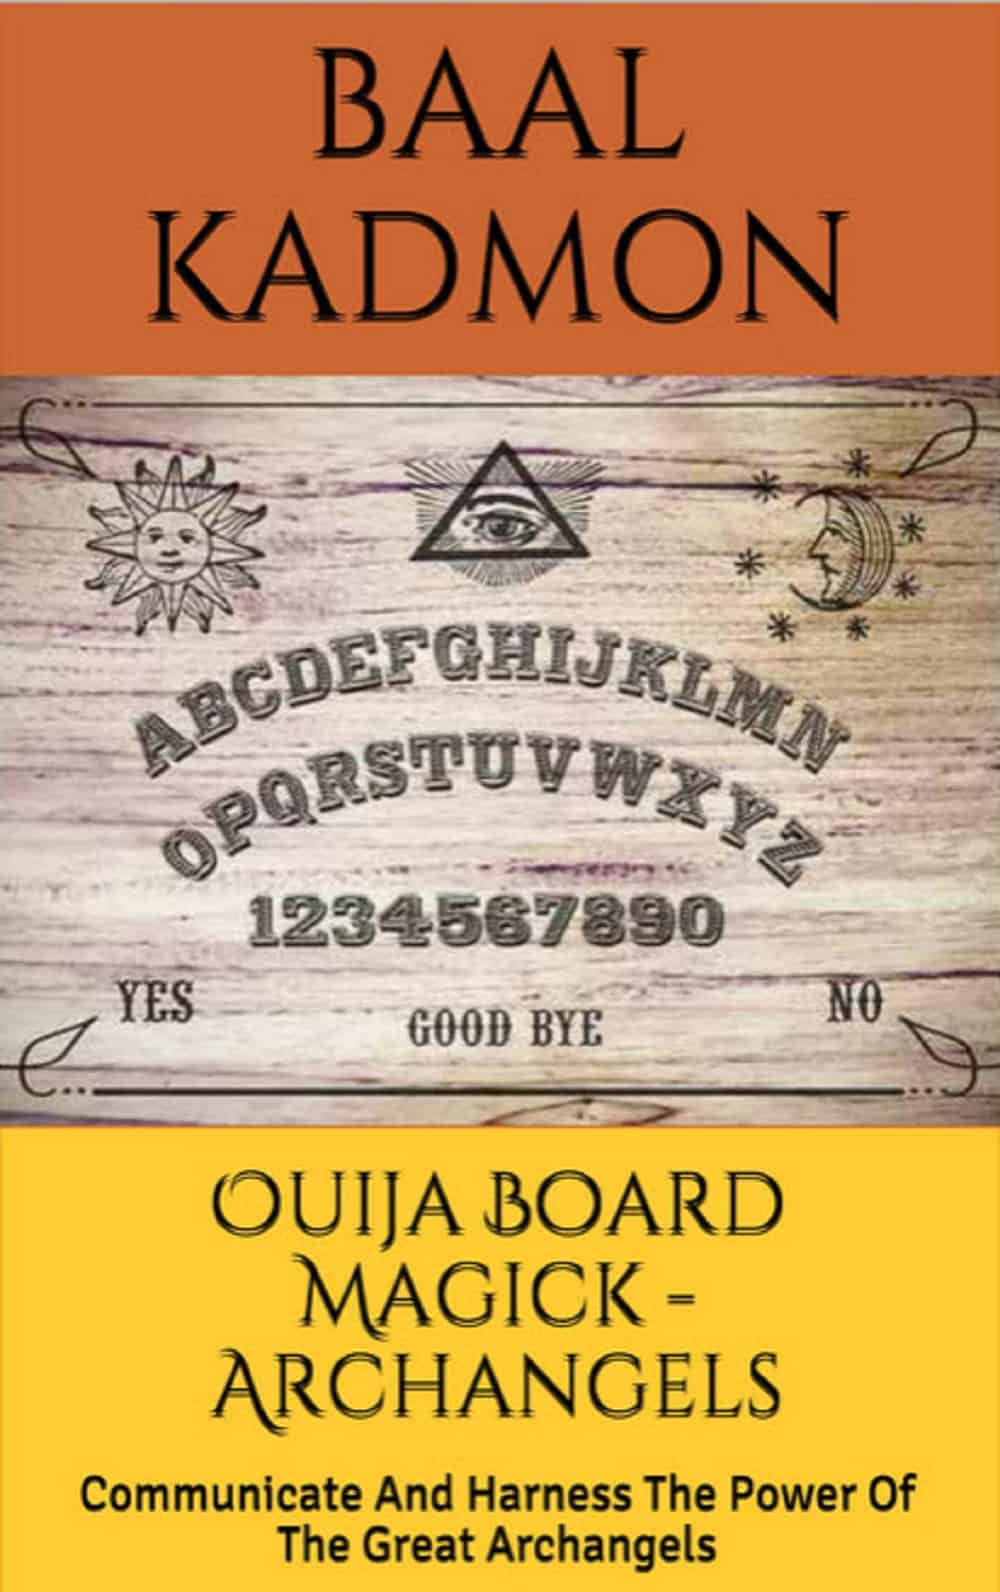 an introduction to the ouija board Tales from a talking board  brief introduction explaining the history of the ouija board,  spirit board, ouija board, whatever you happen to call it,.